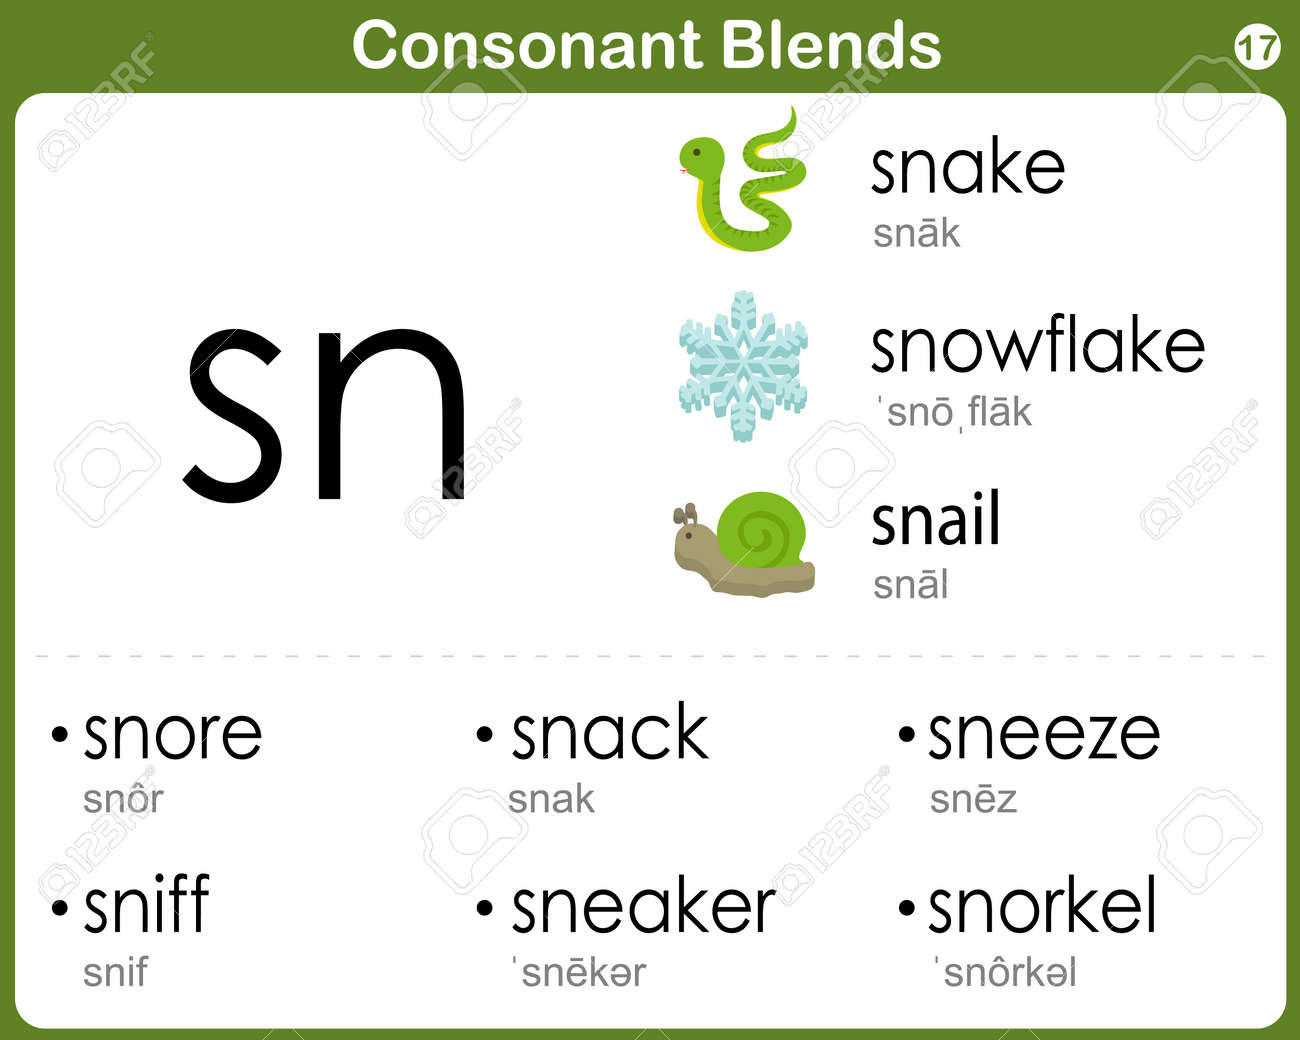 Consonant Blends Worksheet For Kids Royalty Free Cliparts Vectors – Consonant Blends Worksheets for Kindergarten